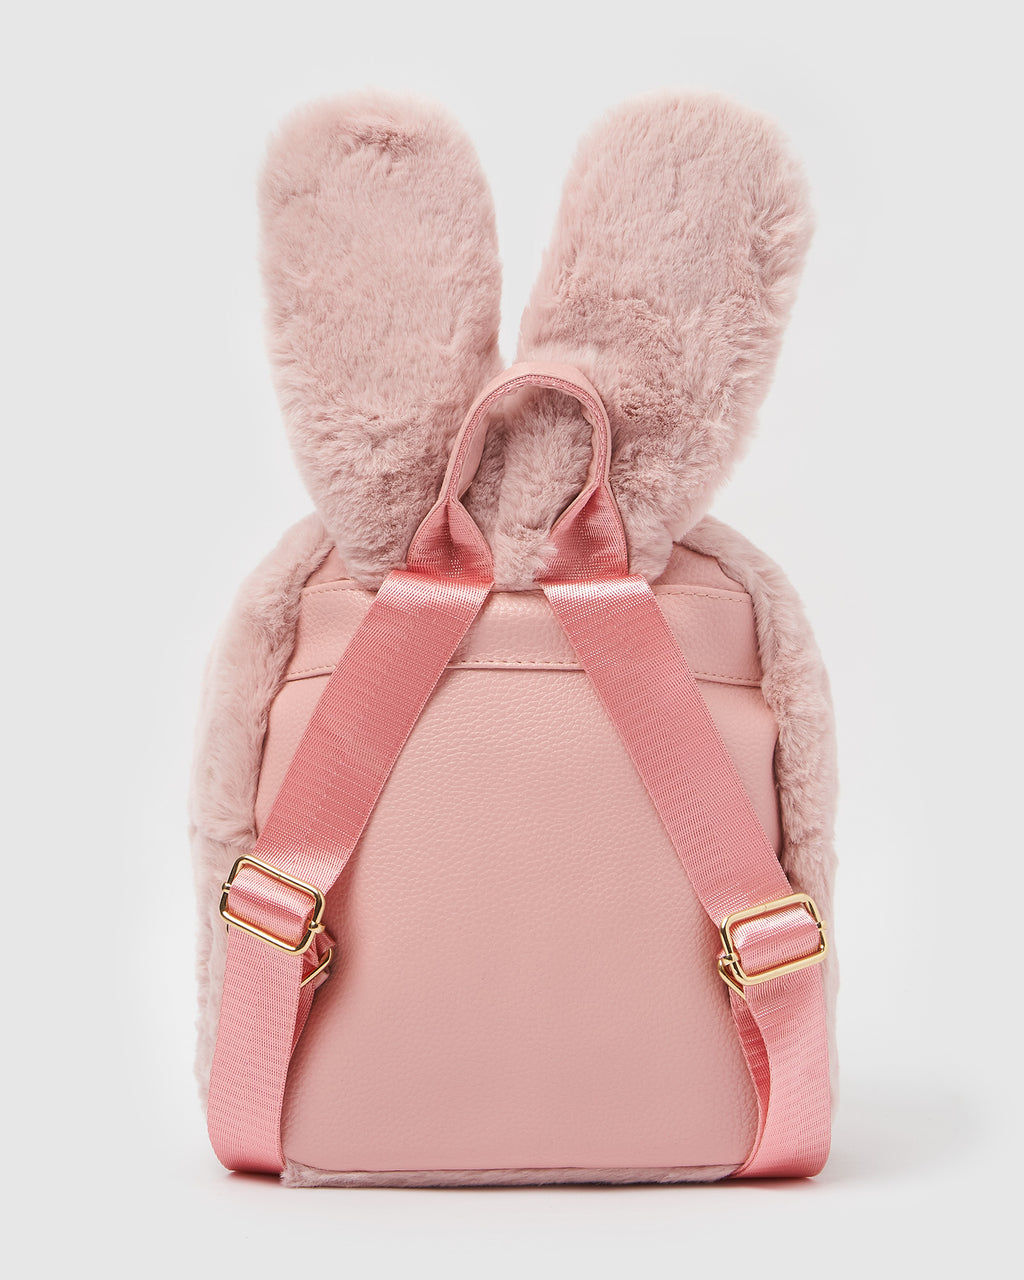 Izoa Kids Peta Rabbit Backpack Pink